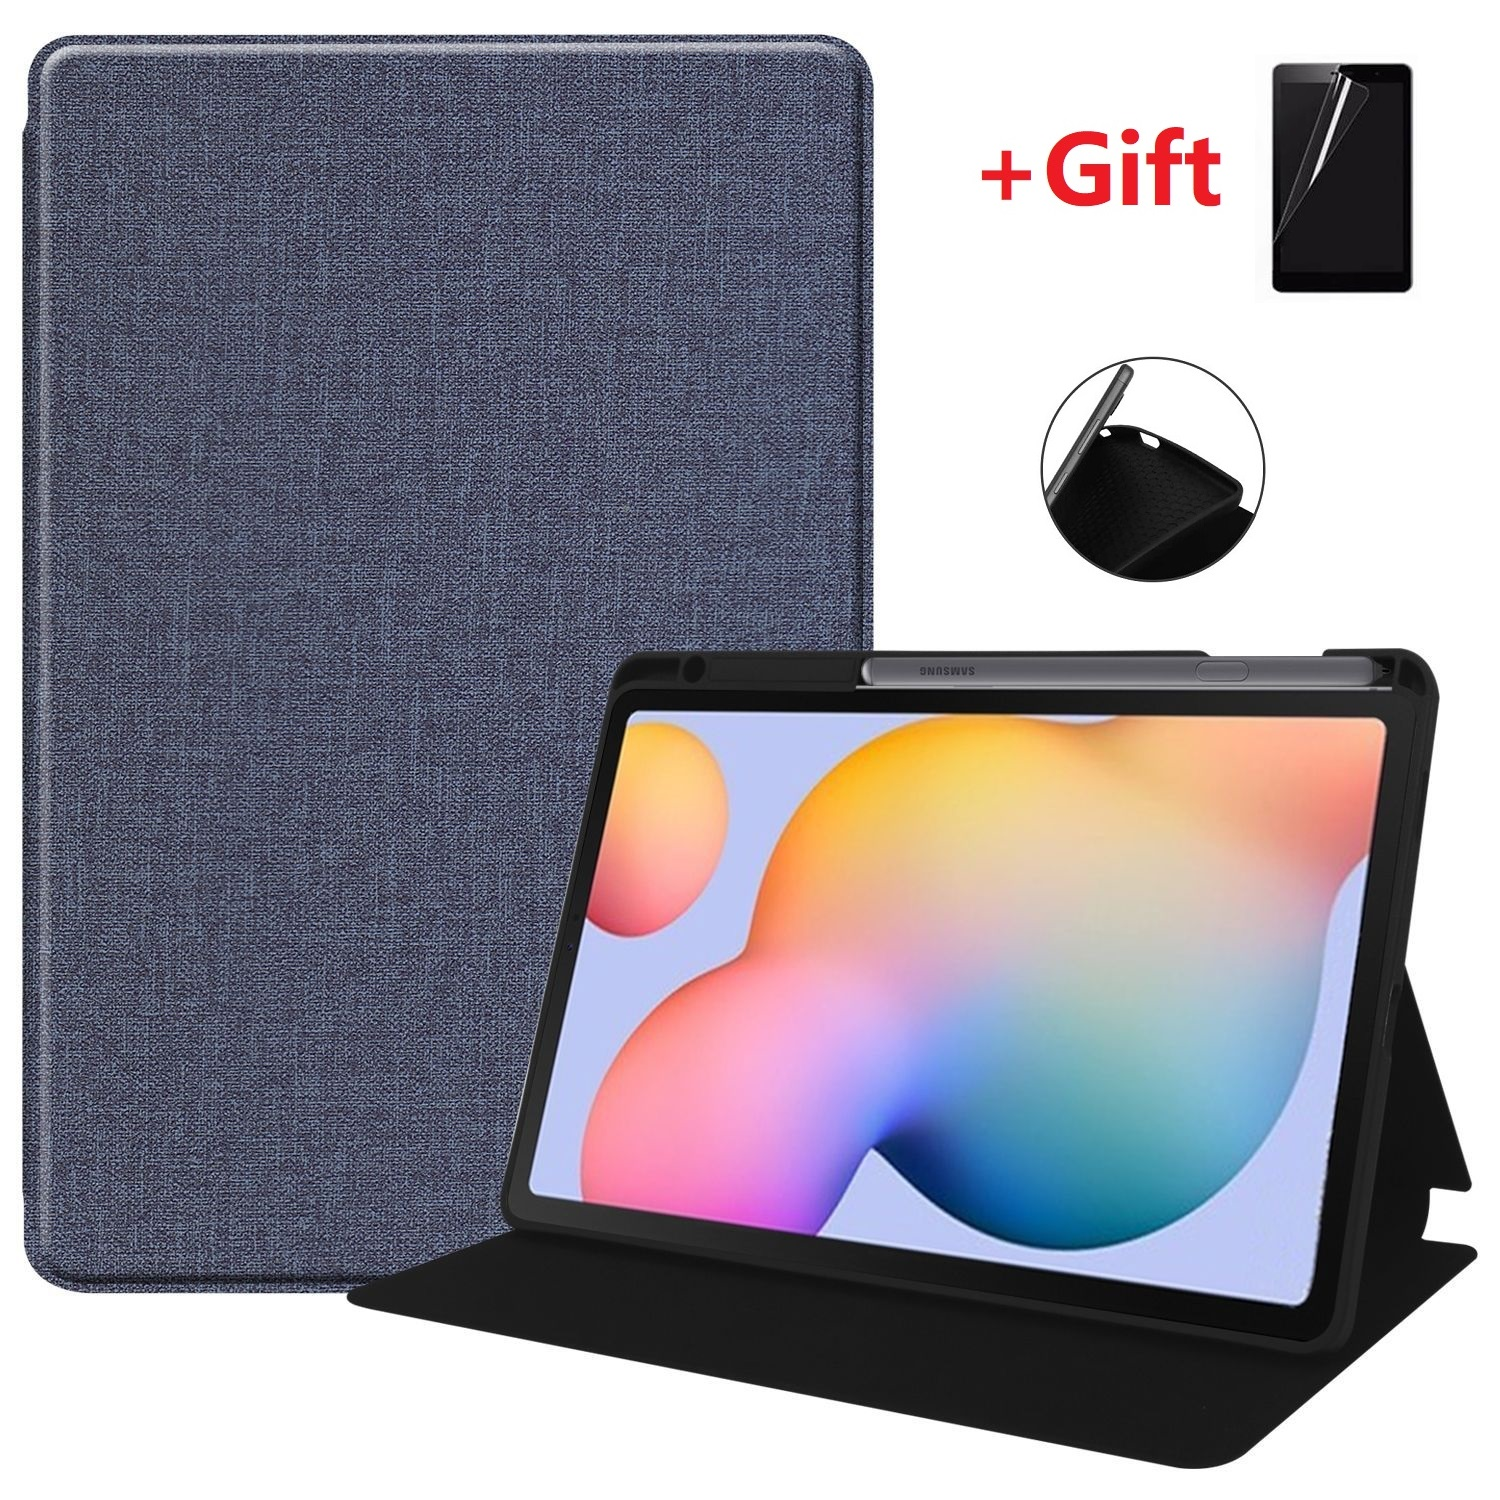 2020 New Model Samsung Galaxy Tab S6 Lite 10.4 Case 2020 Magnet Cover Tablet Shell SM-P610/P615 Trifold Stand Soft Back